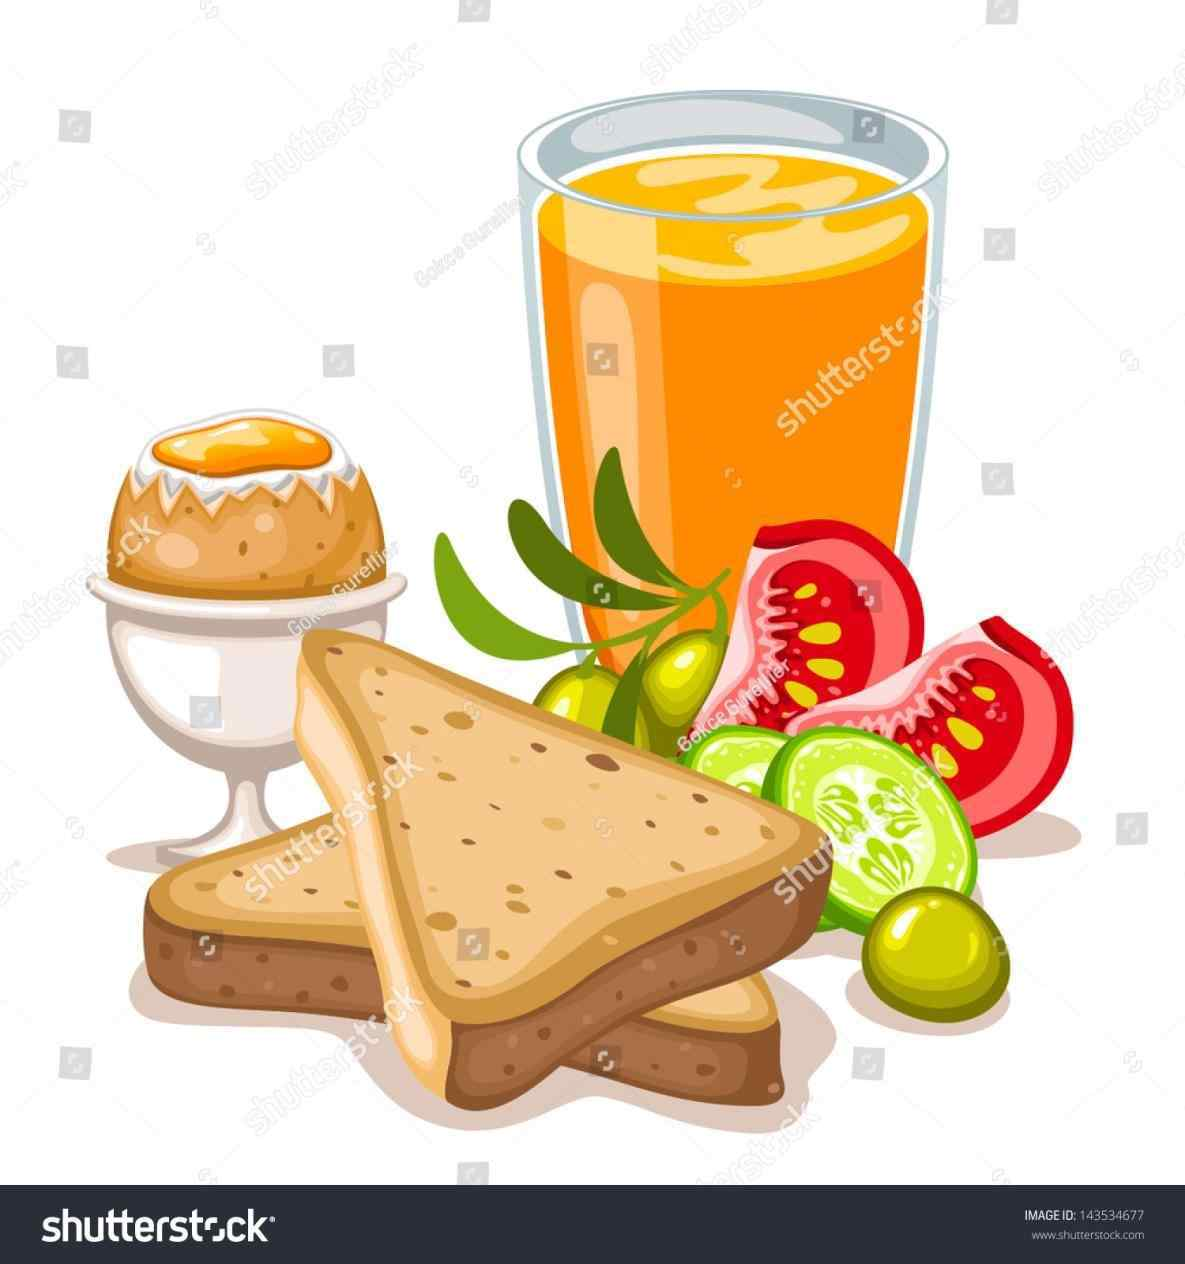 Healthy breakfast clipart 6 » Clipart Station.